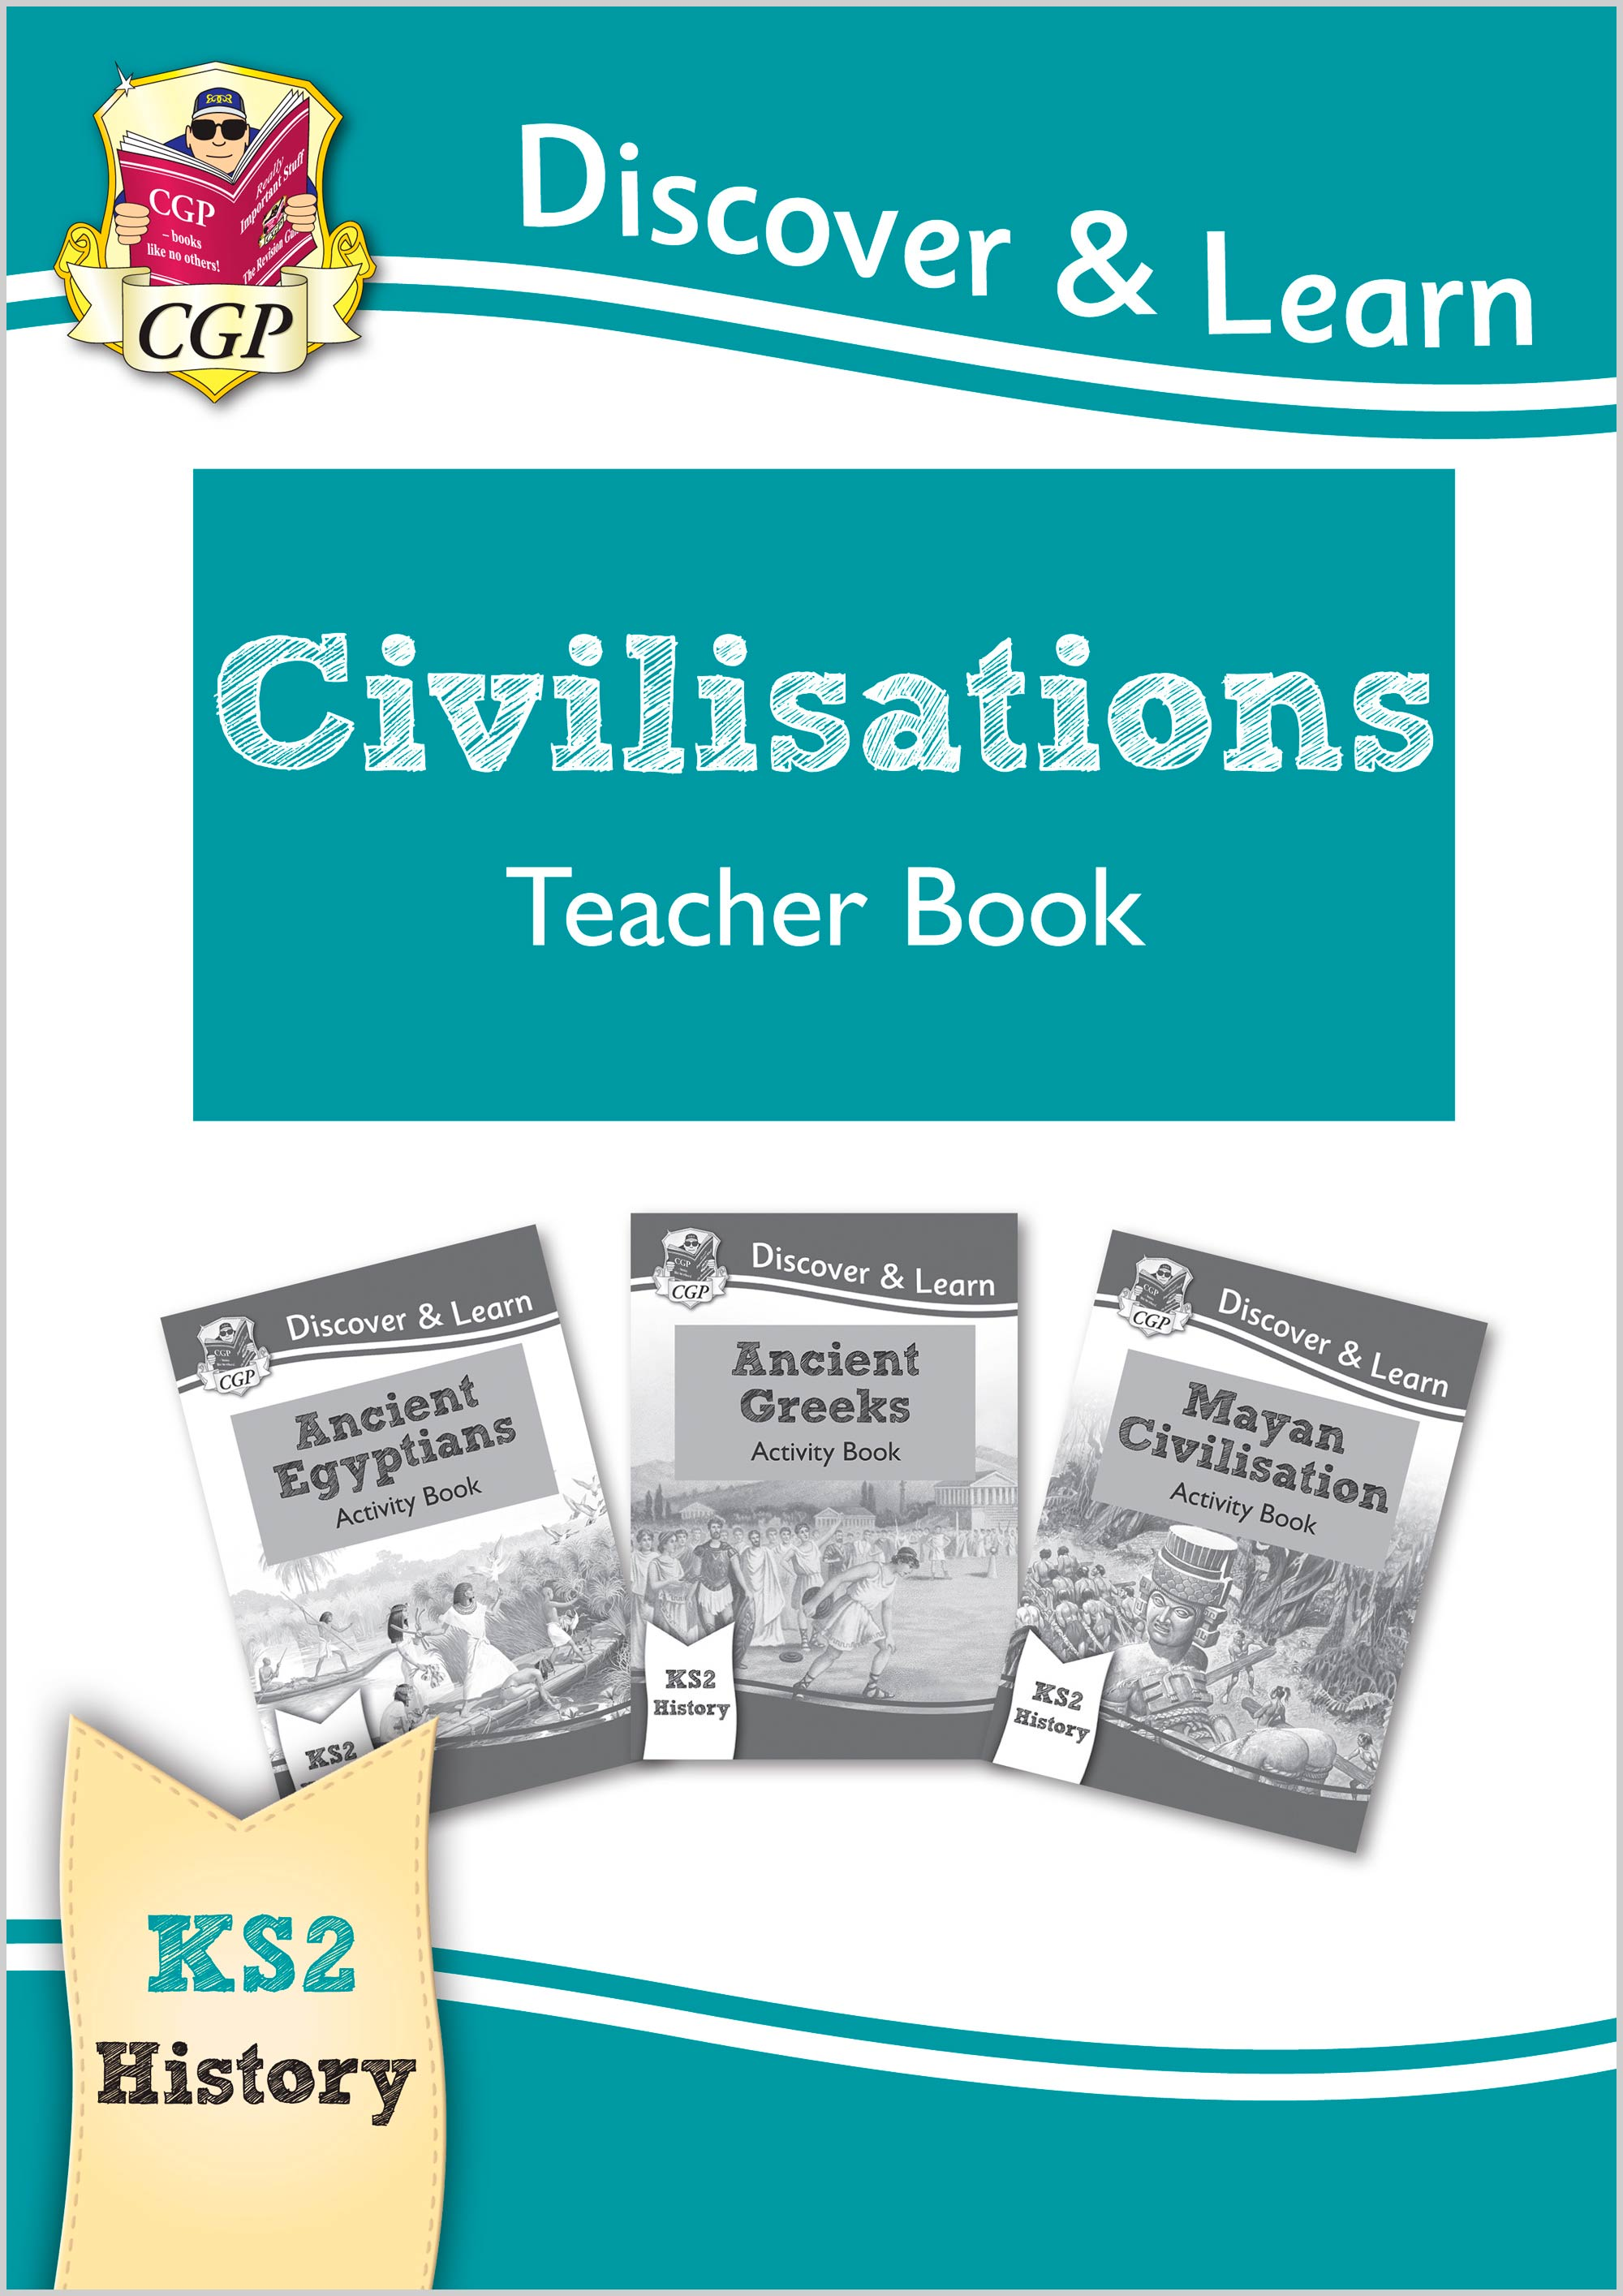 HCVT21 - KS2 Discover & Learn: History - Civilisations Teacher Book (Egyptians, Greeks, Maya), Years